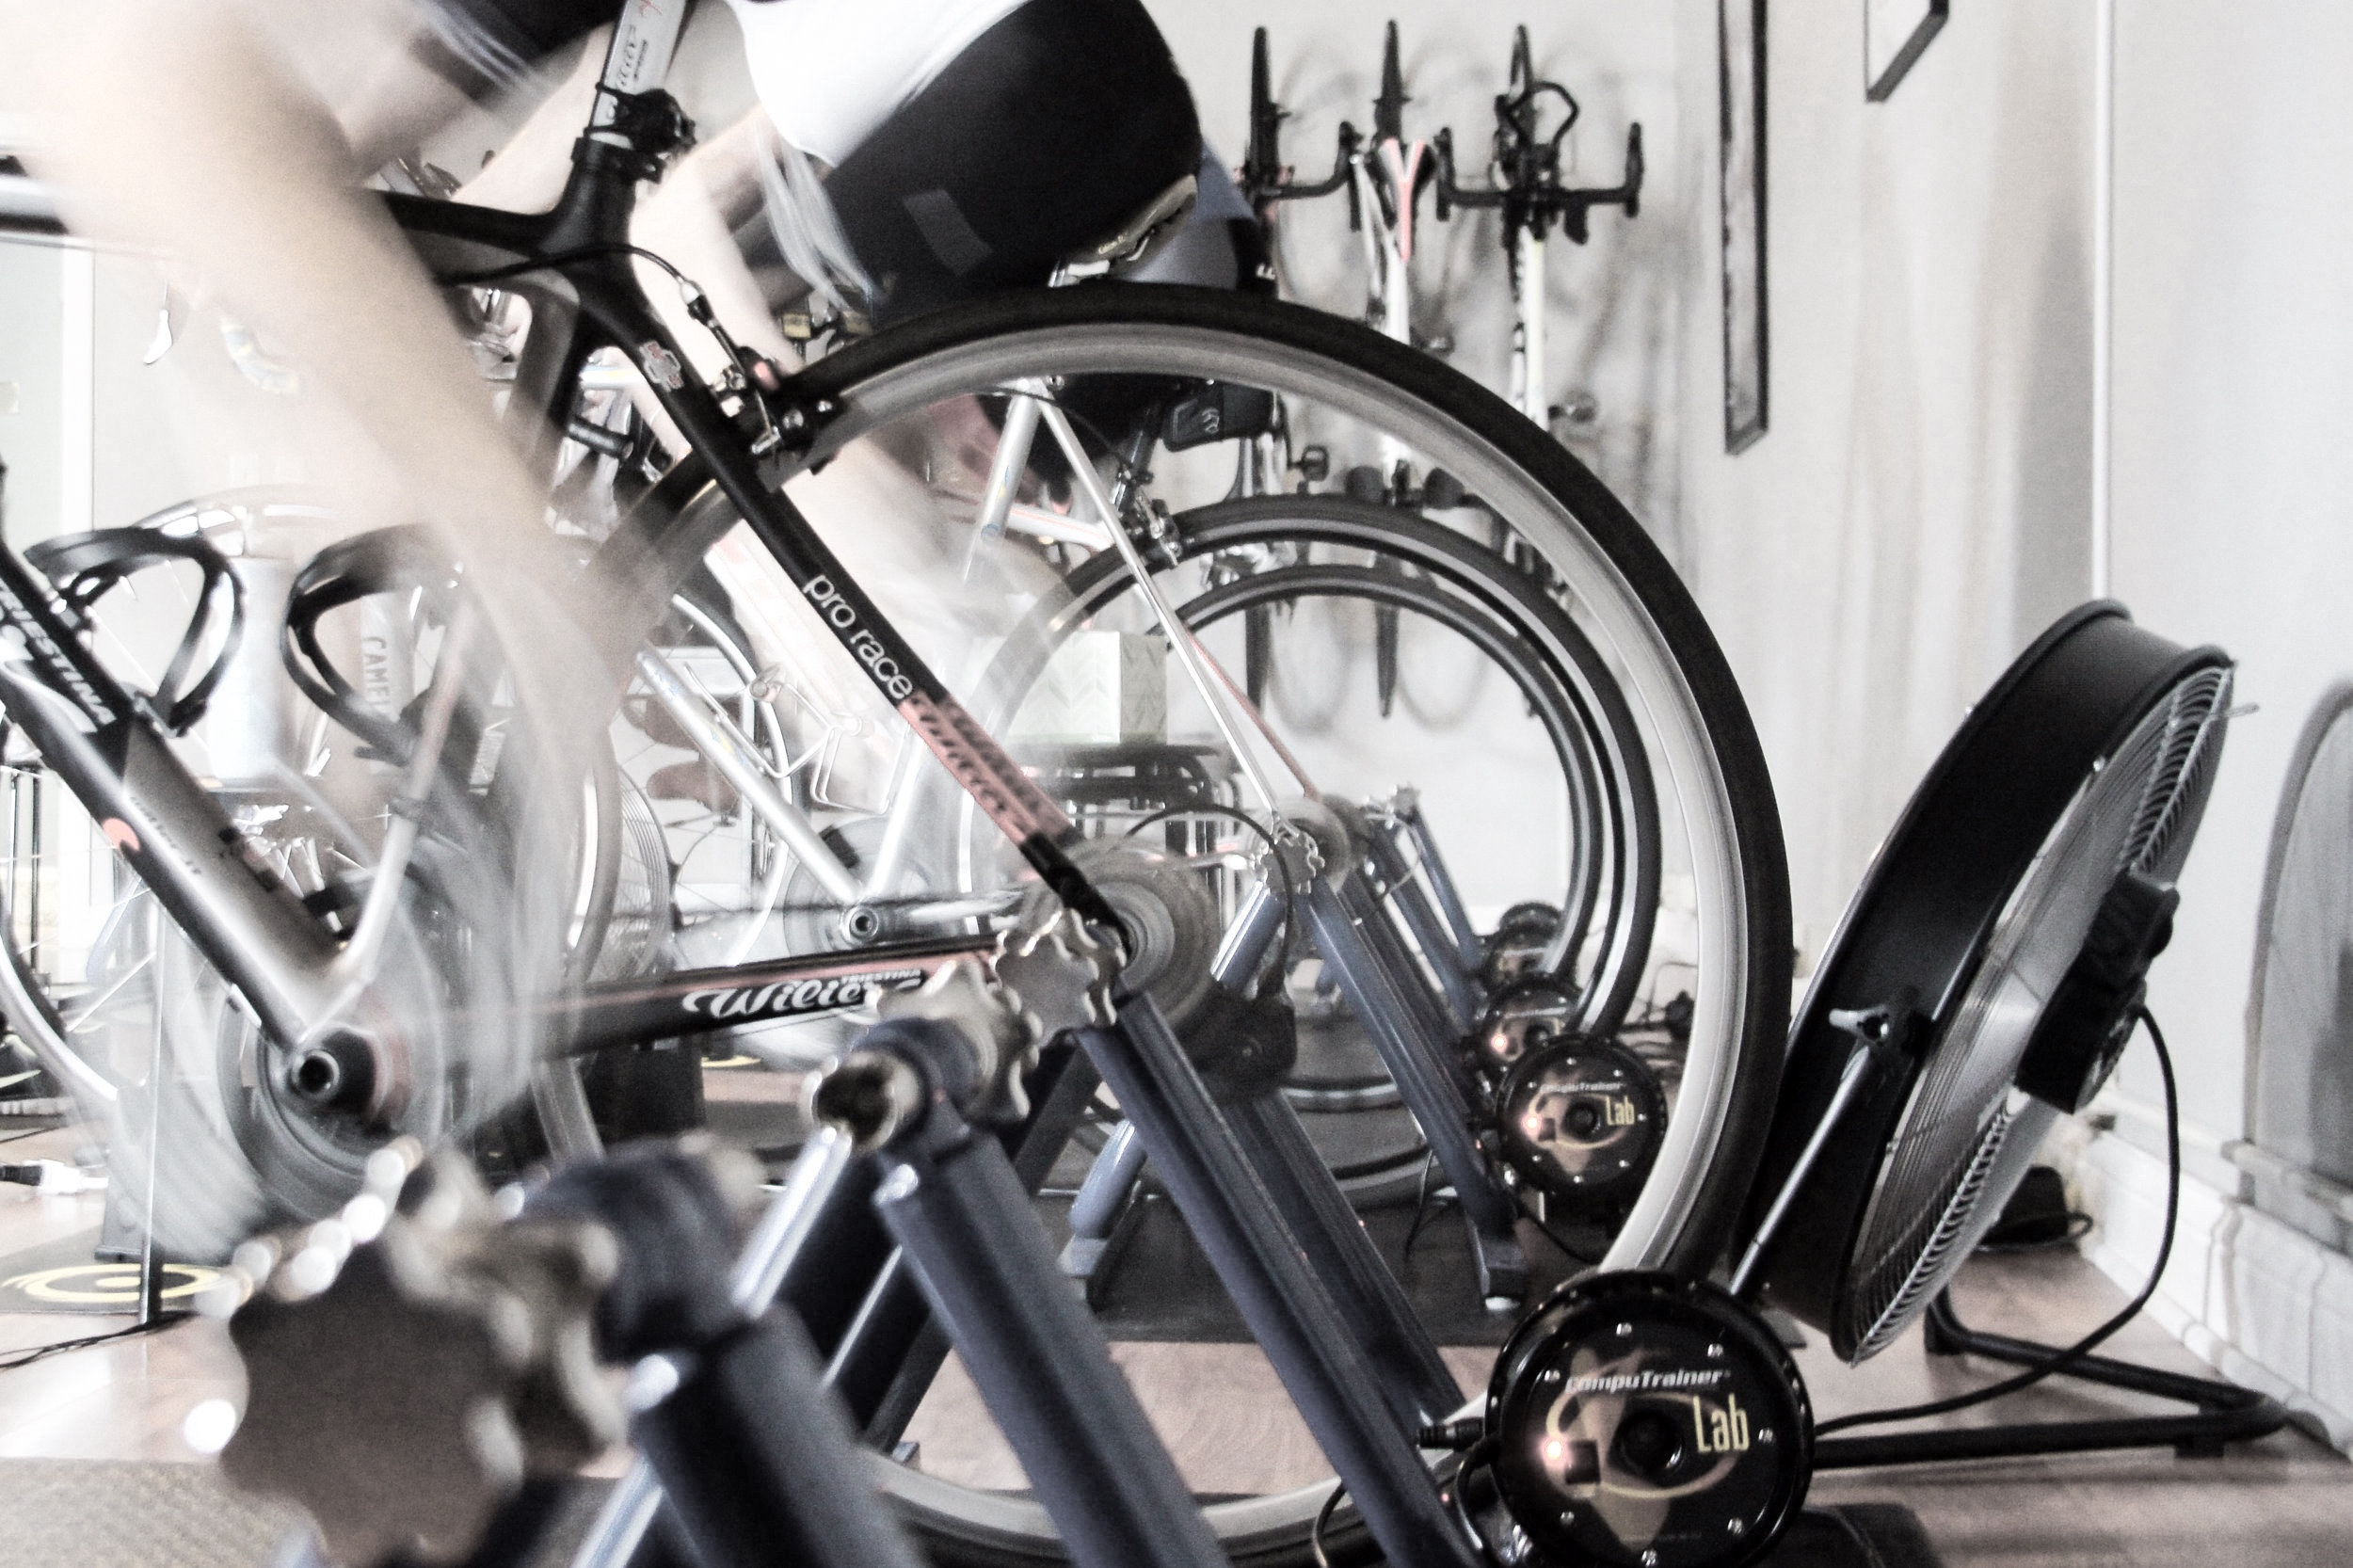 ROCK & RIDE   Indoor Bike-Training Studio | Multisport Coaching  YOUR BIKE + OUR TRAINER = AWESOME WORKOUT   Learn More